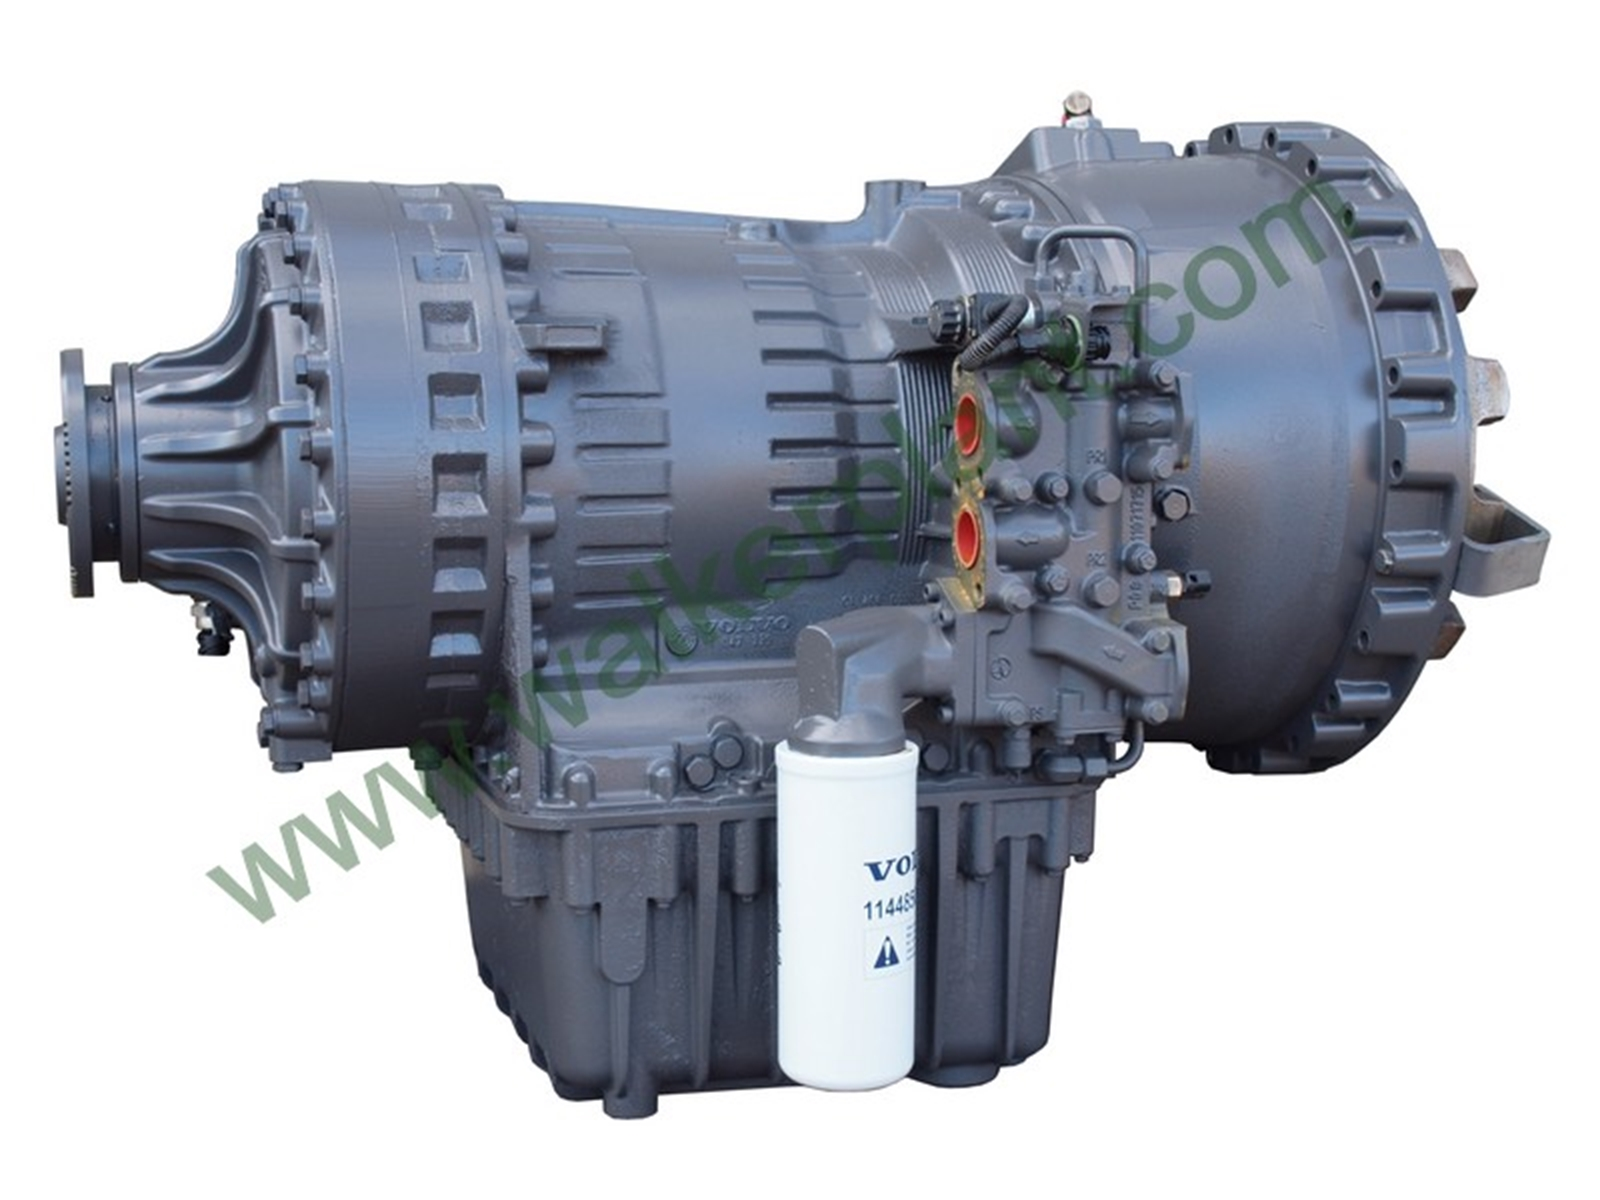 Volvo 22688 PT1563 Transmission Reconditioned